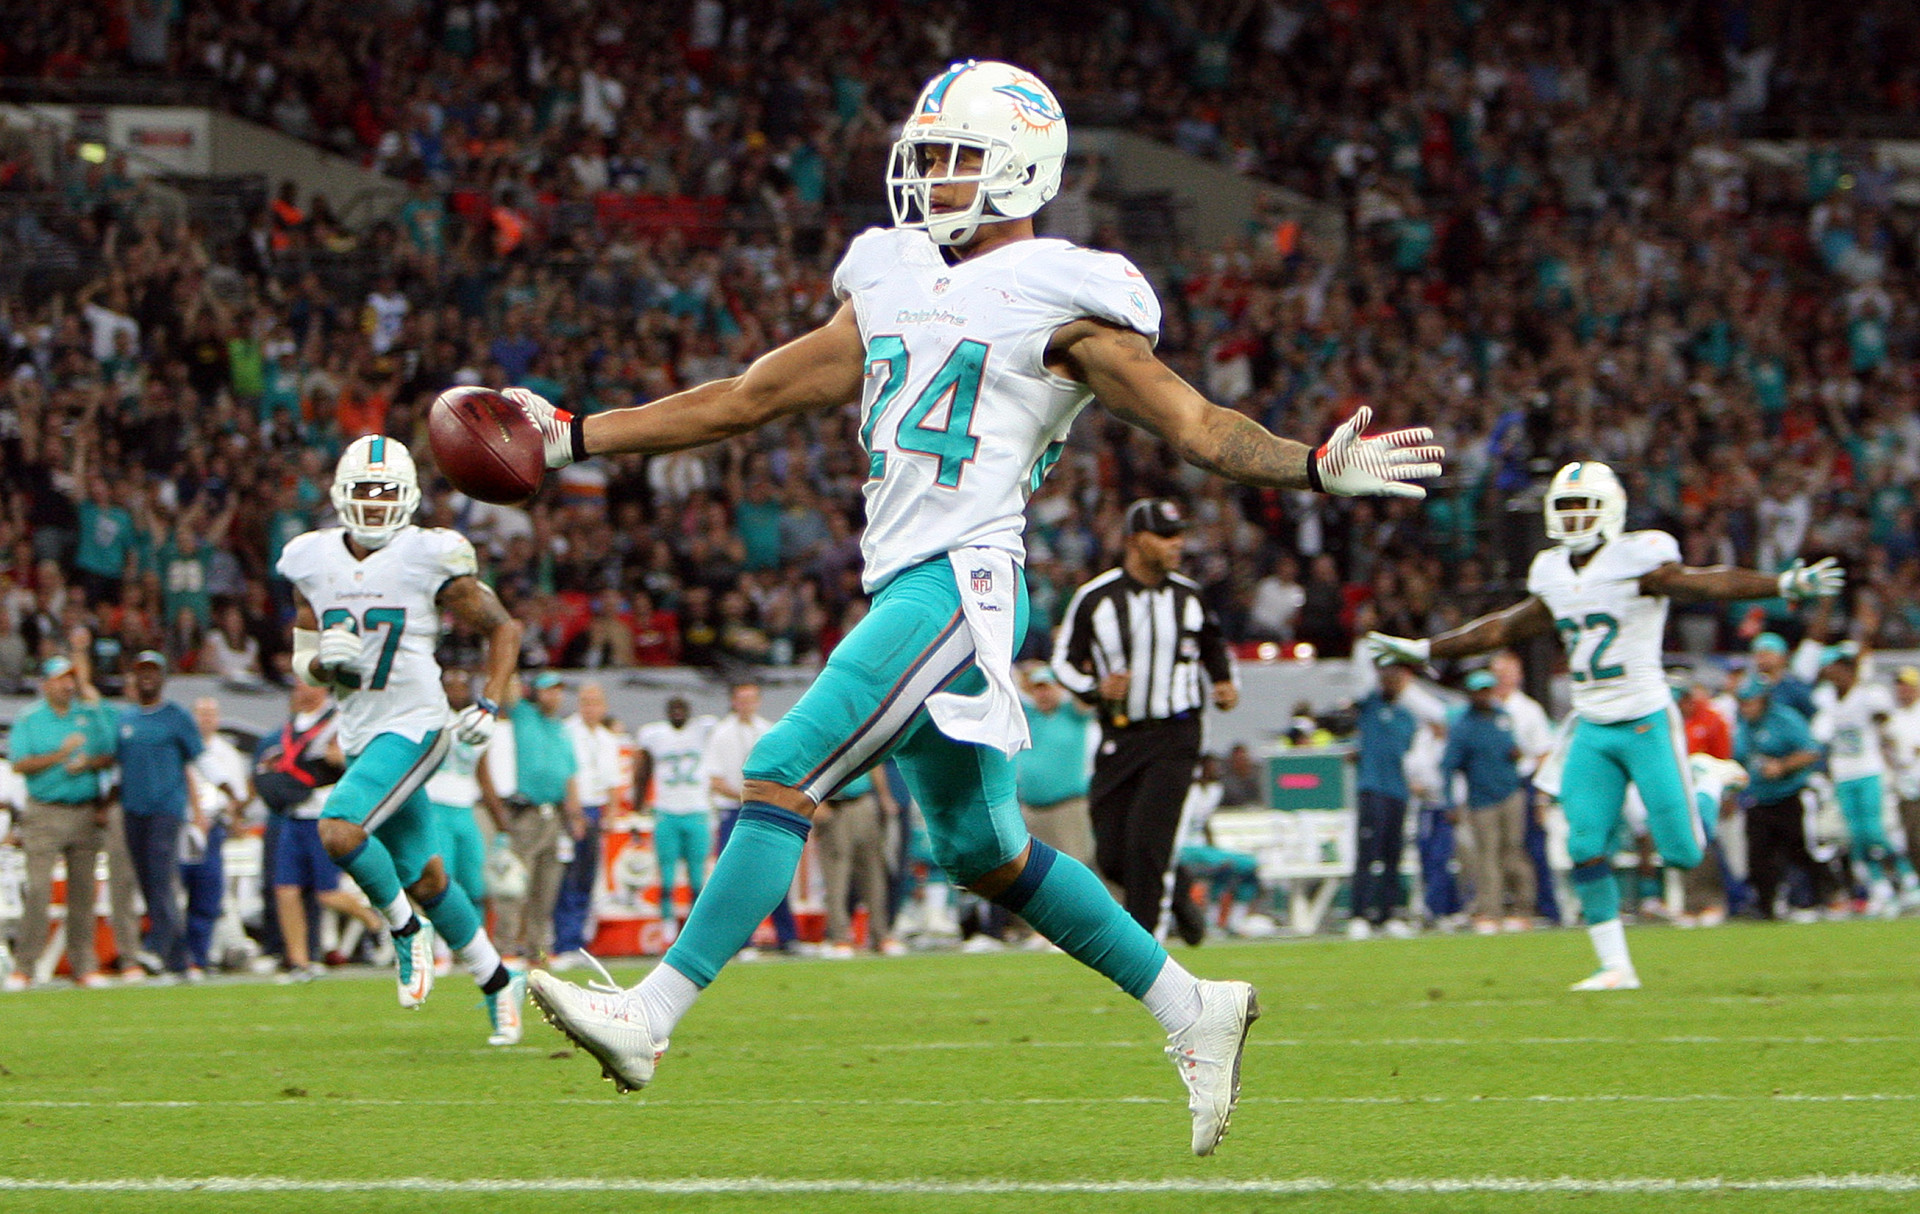 Miami Dolphins at Oakland Raiders NFL 28/09/14 Wembley Stadium,London. Cortland Finnegan celebrates scoring a touchdown. Pic Nicky Hayes/NFL UK